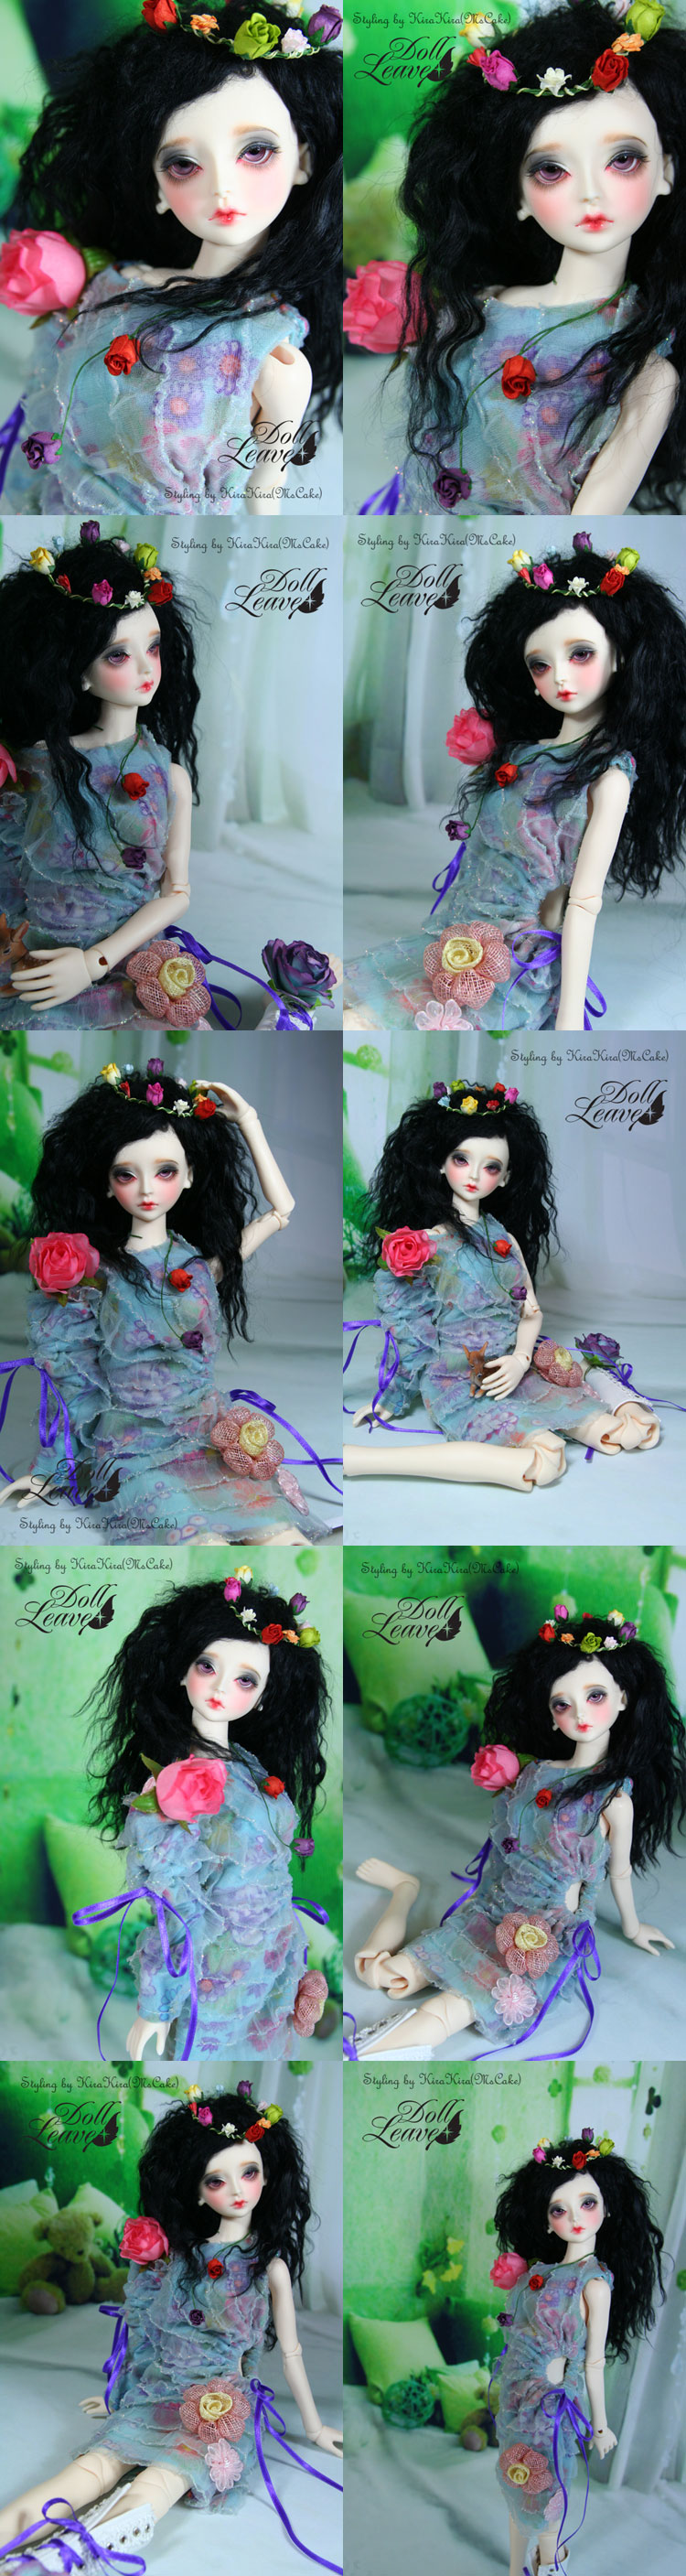 BJD F-(Flora) Girl 43.5cm Boll-jointed doll